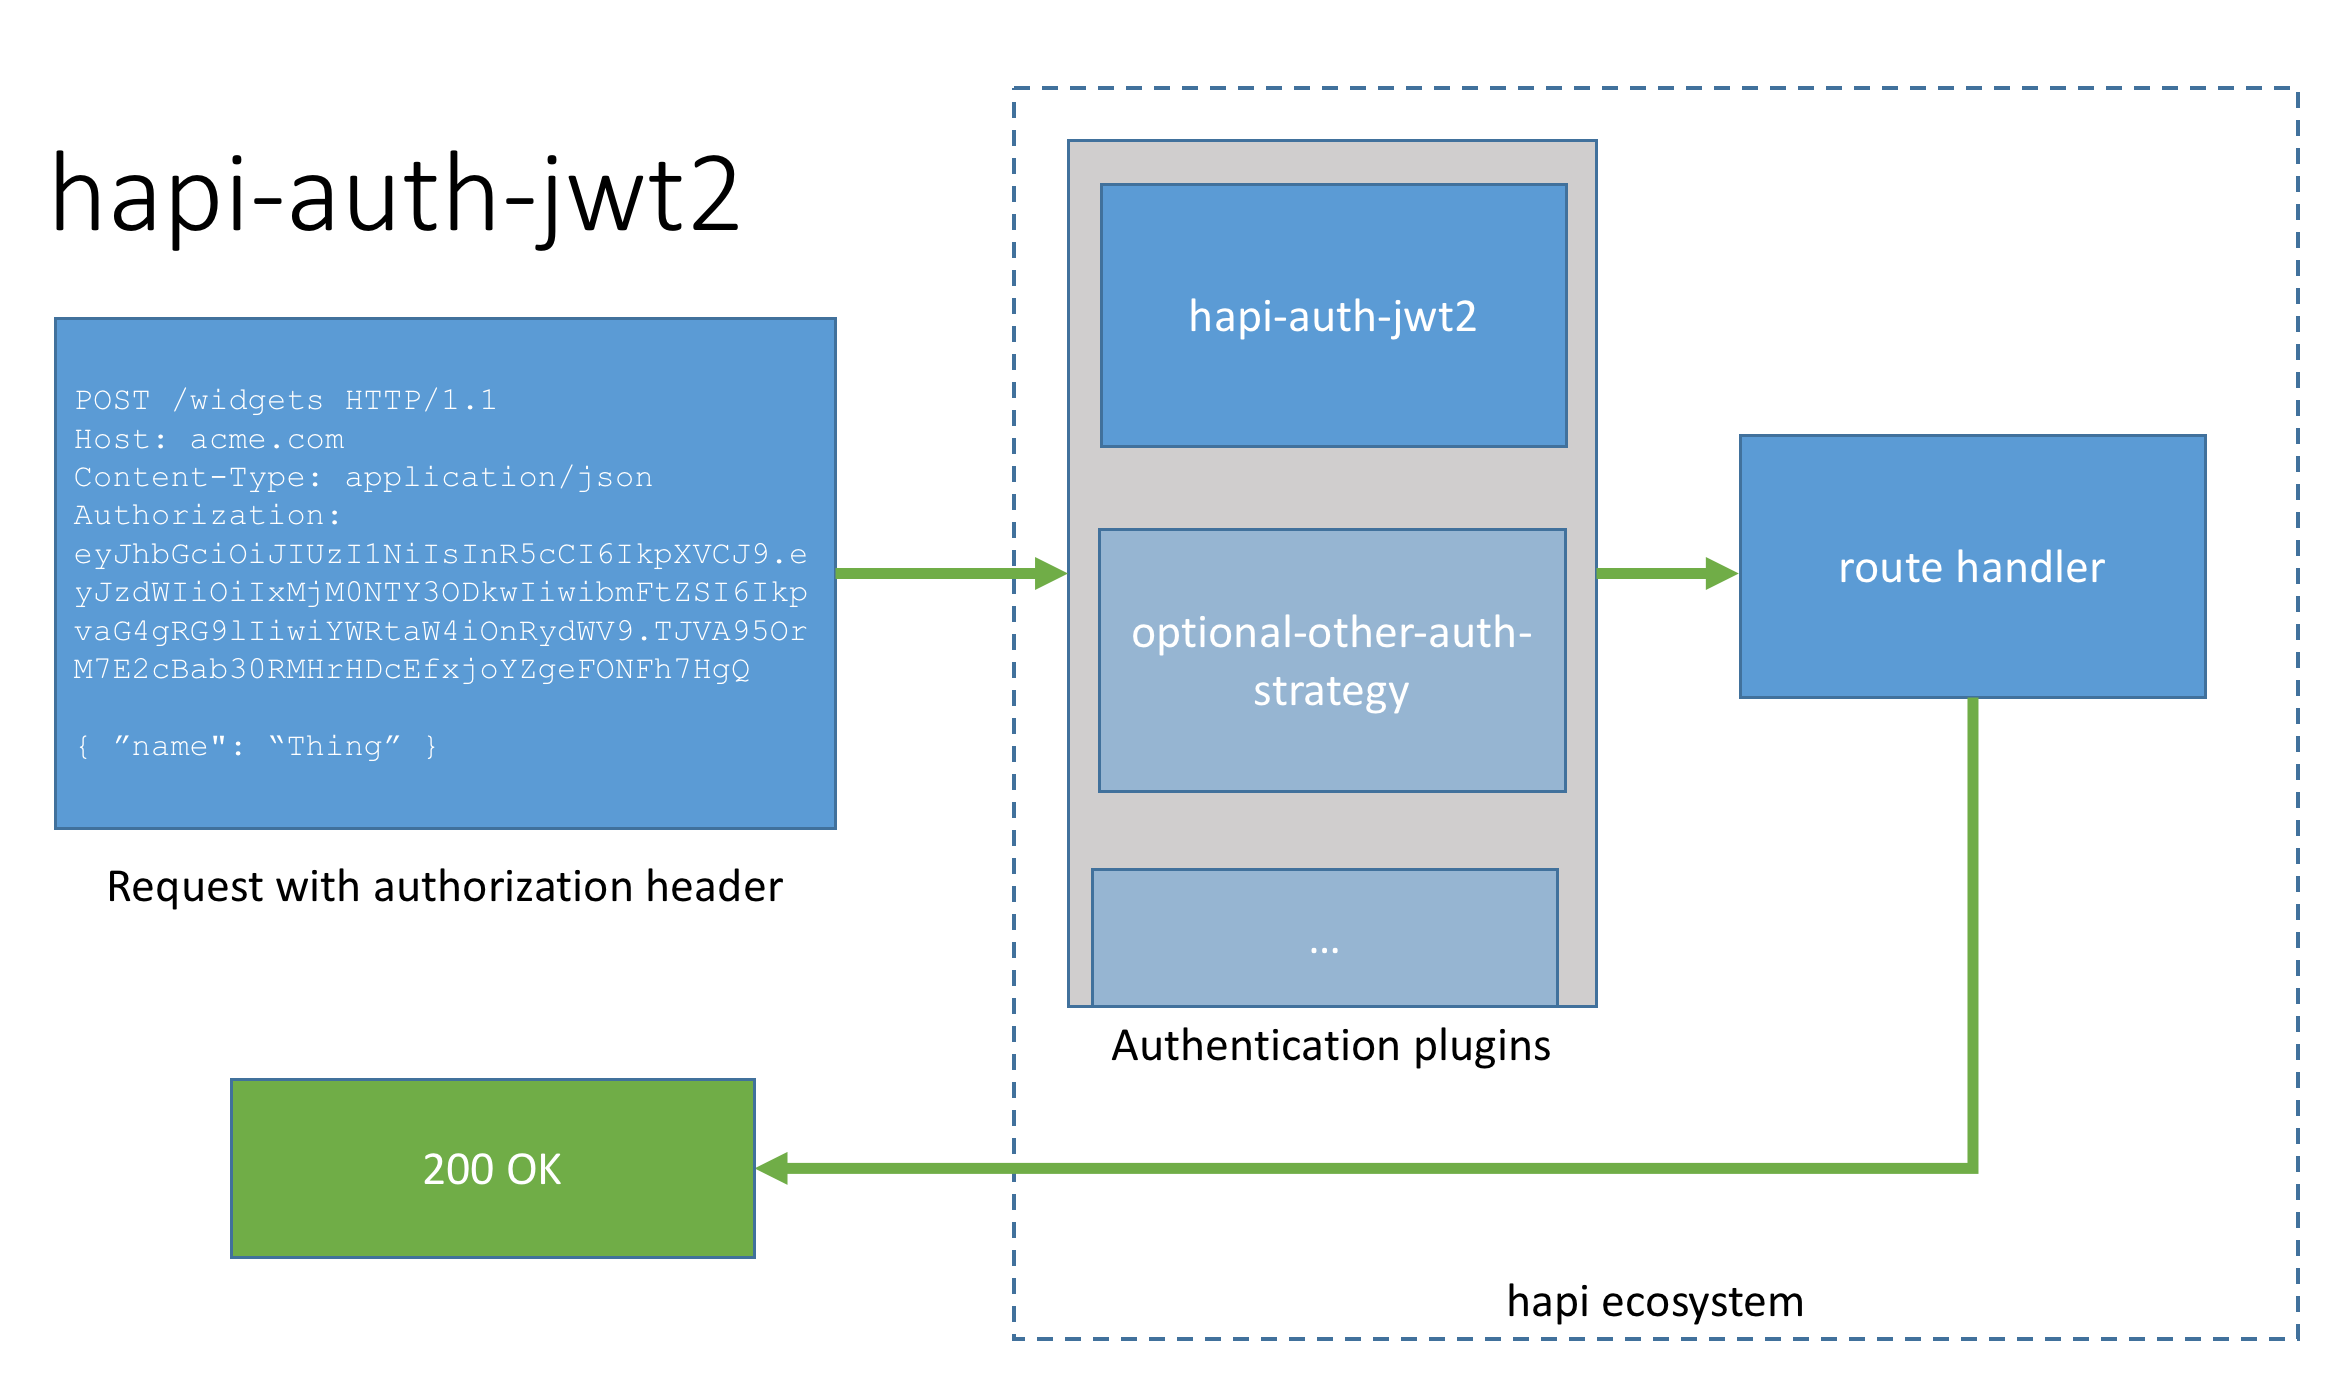 hapi auth request flow